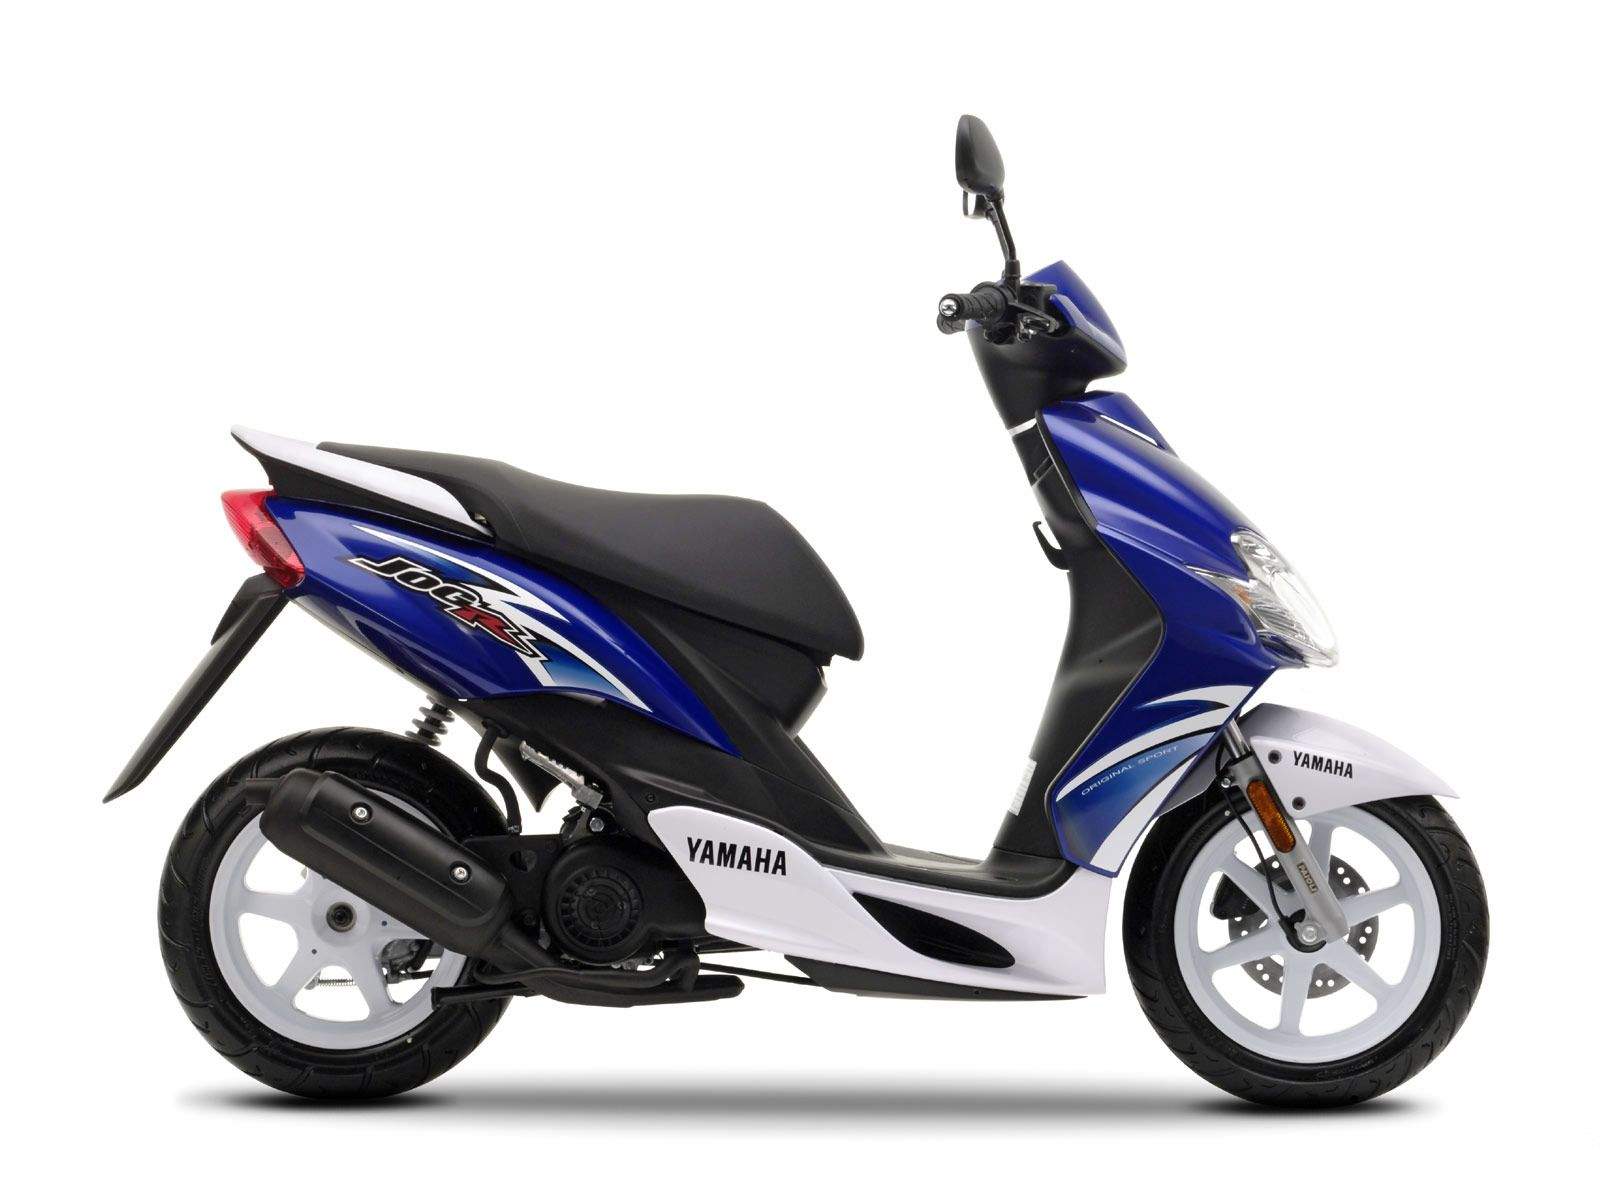 view here full information of latest yamaha jogr bike with prices in